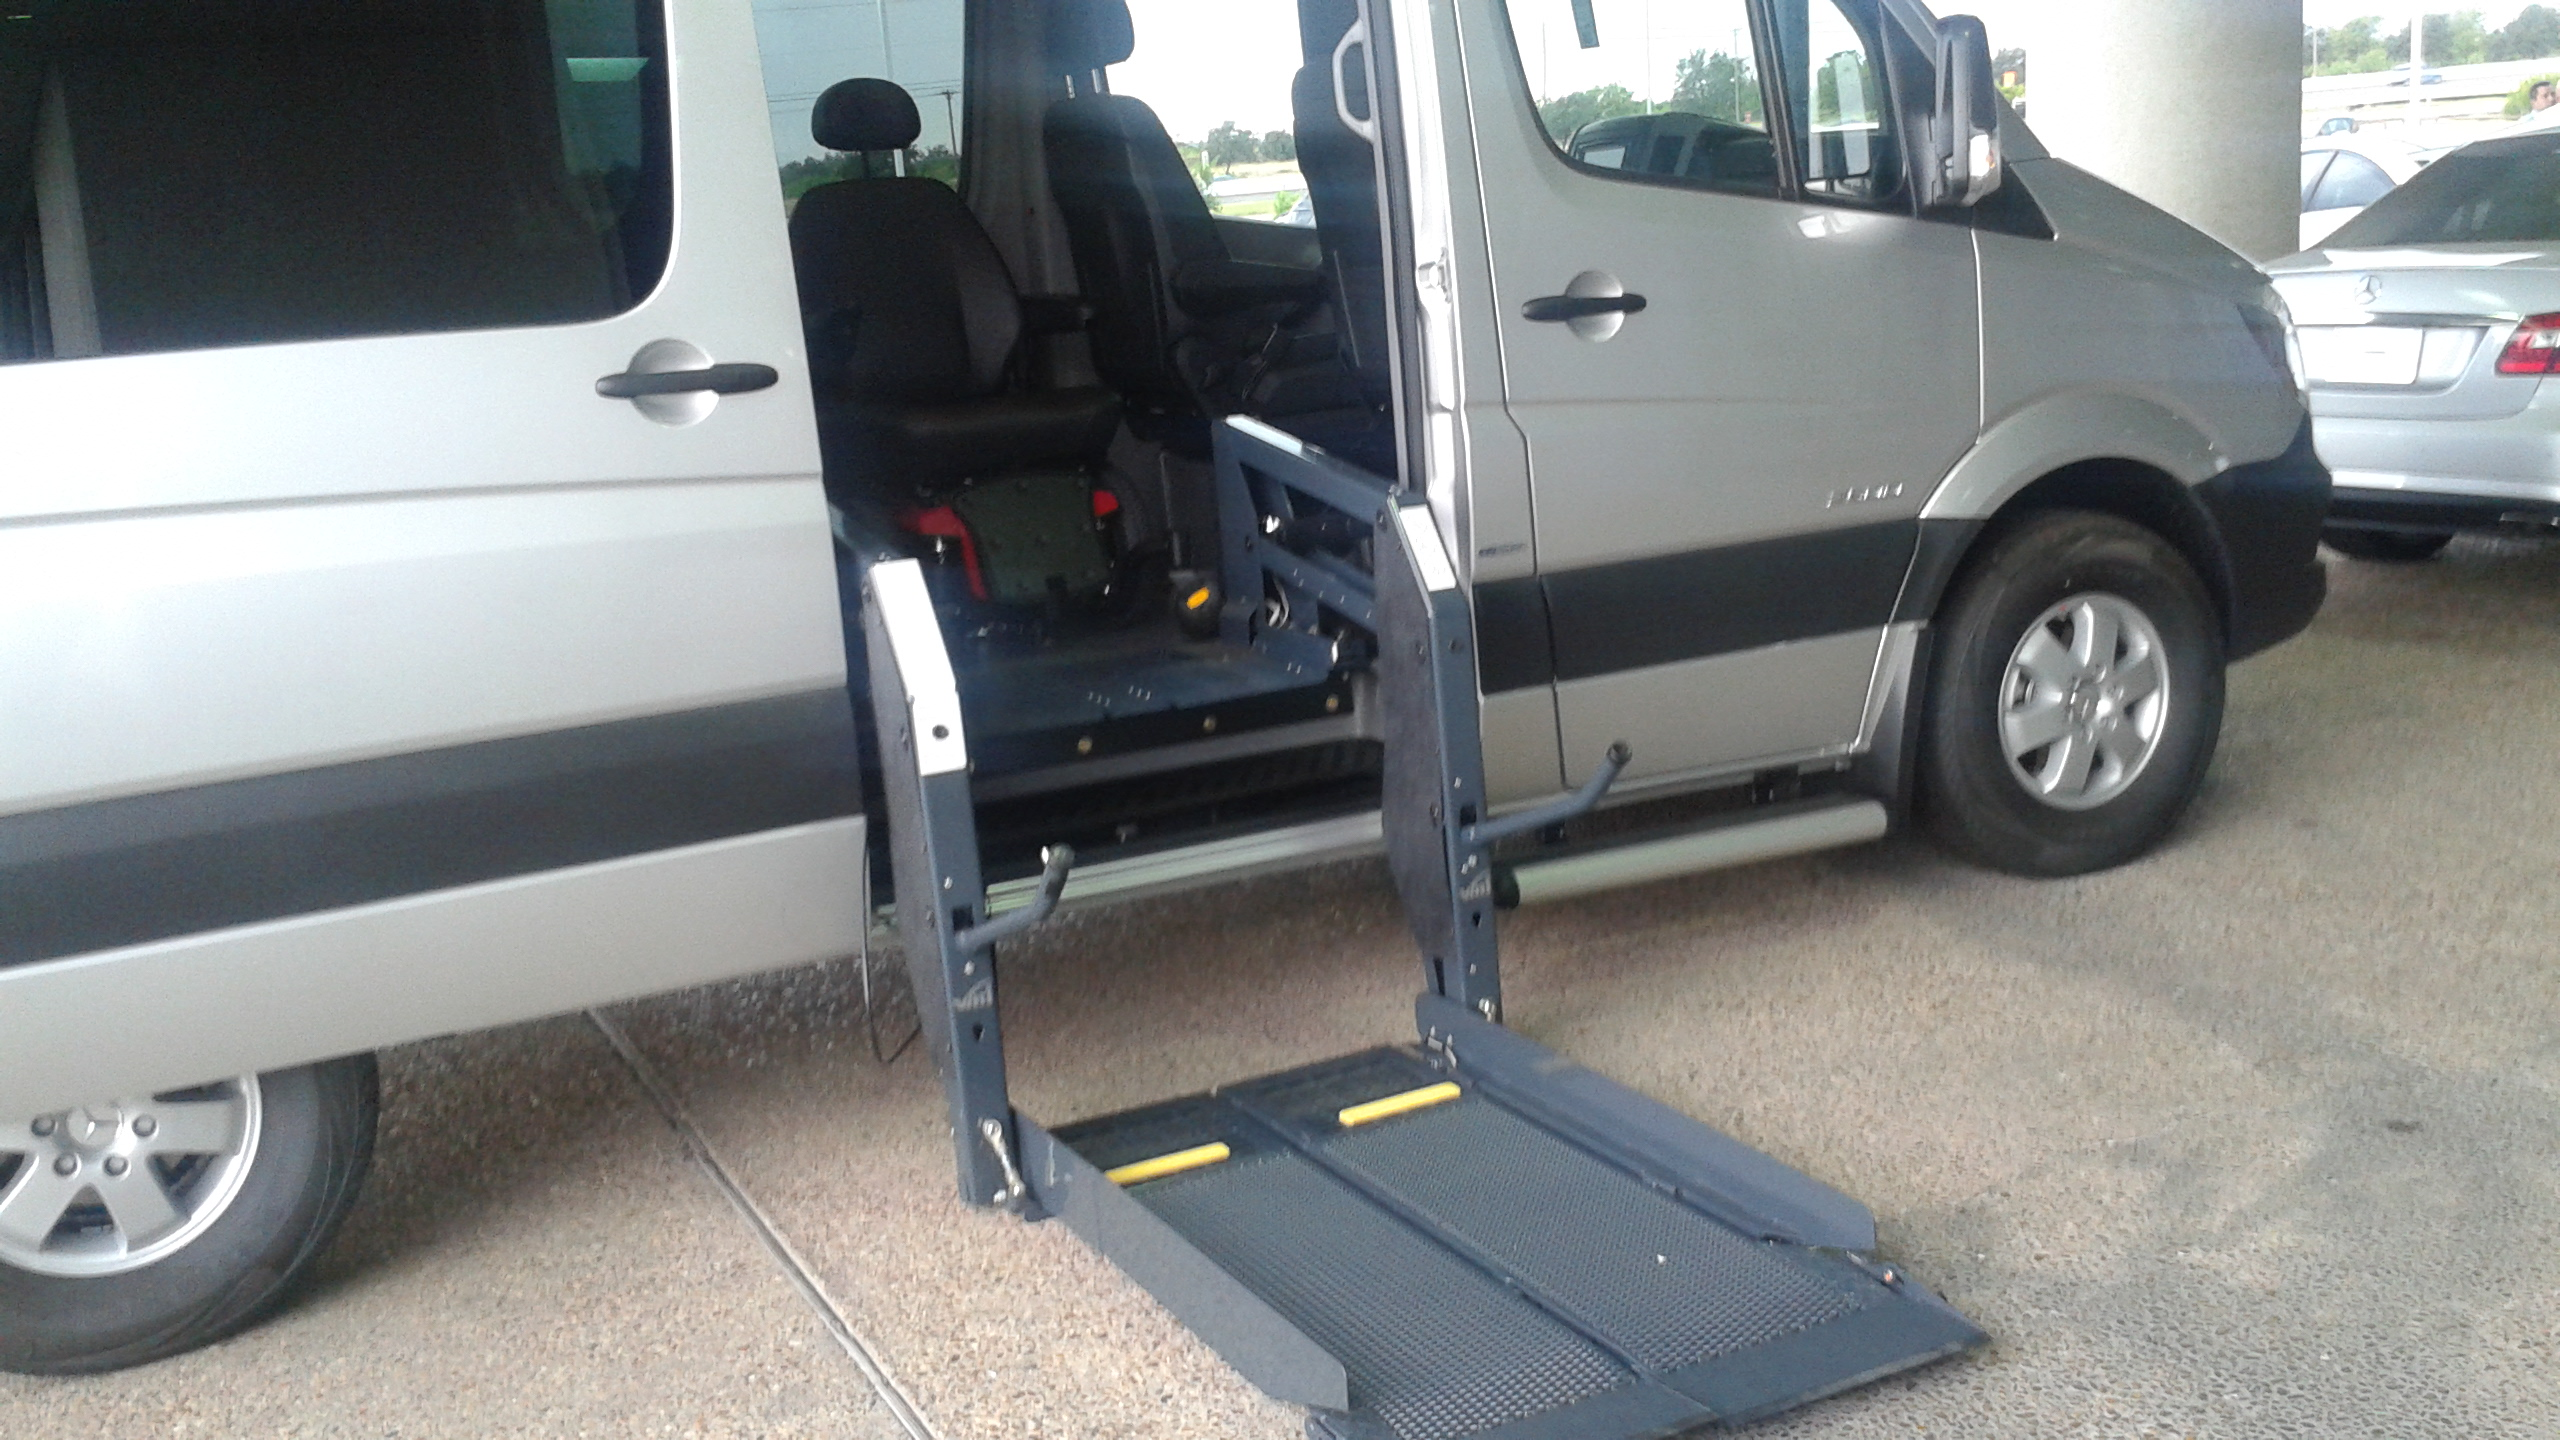 Garlyn Shelton Nissan >> Mobility & Wheel Chair Accessible Van Conversions – Dave the #NVguy now at Garlyn Shelton Nissan ...